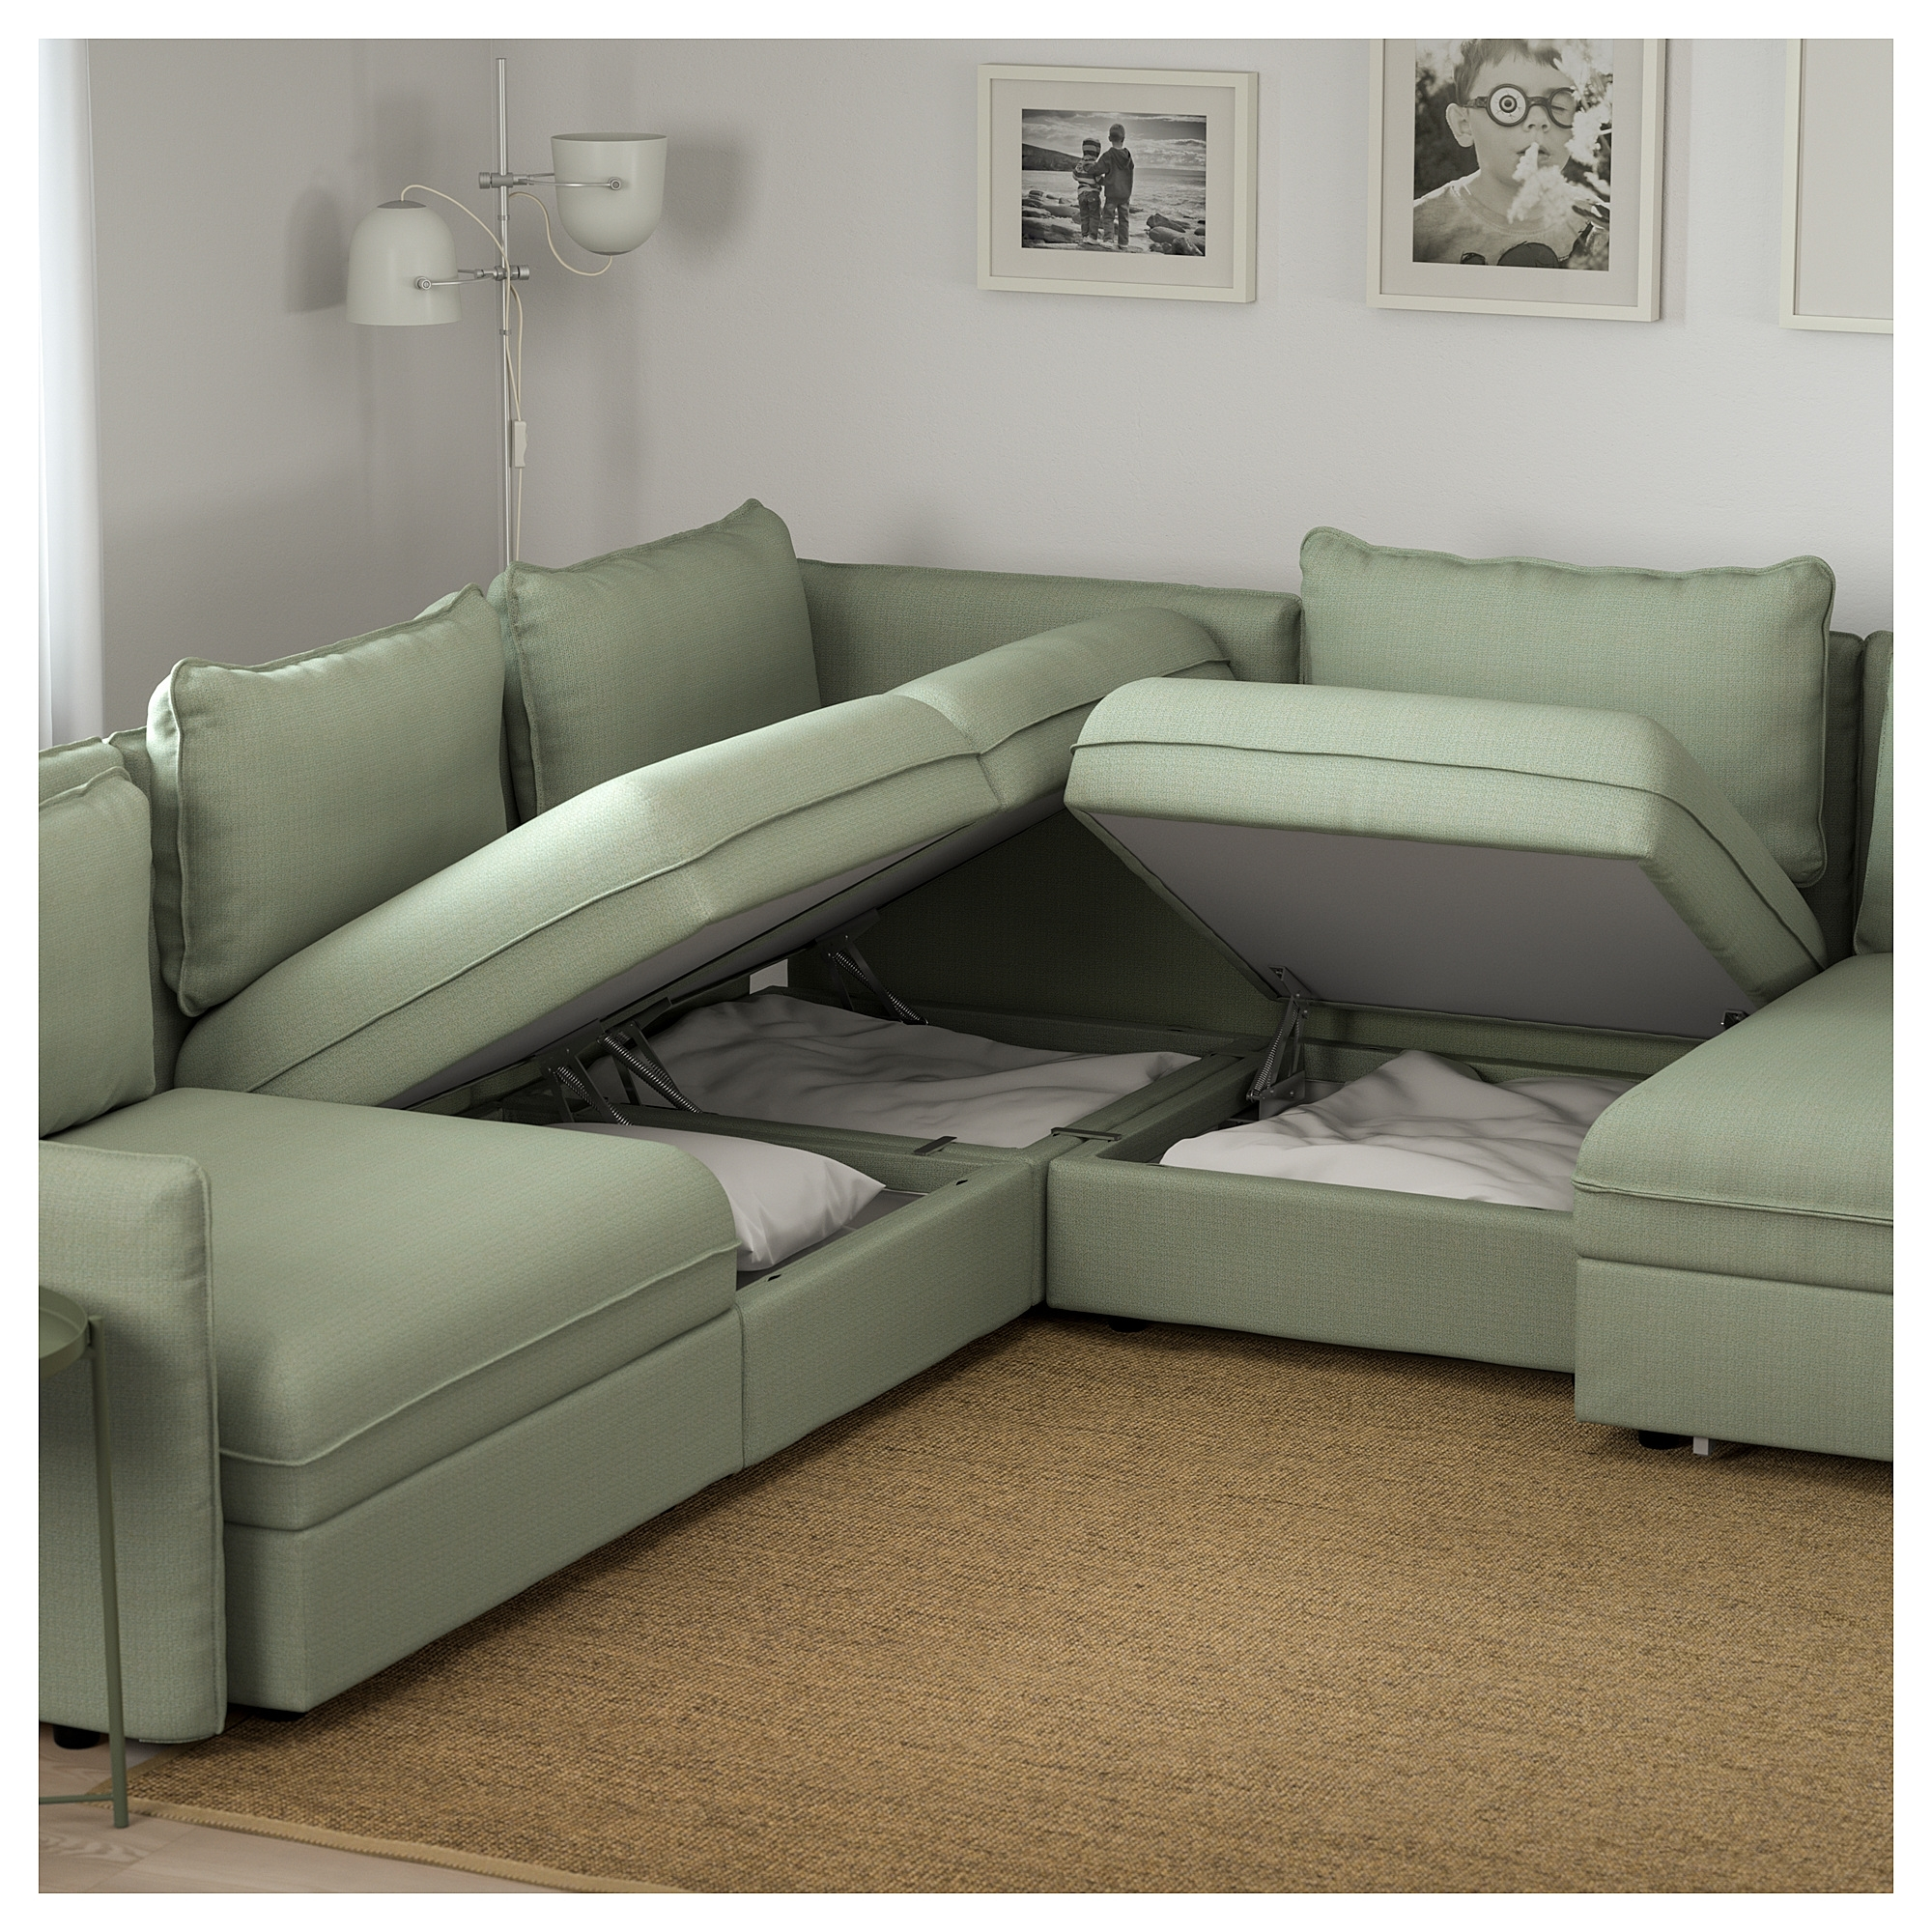 Vallentuna 6 Seat Corner Sofa With Bed Hillared Green – Ikea For Ikea Corner Sofas With Storage (View 10 of 10)